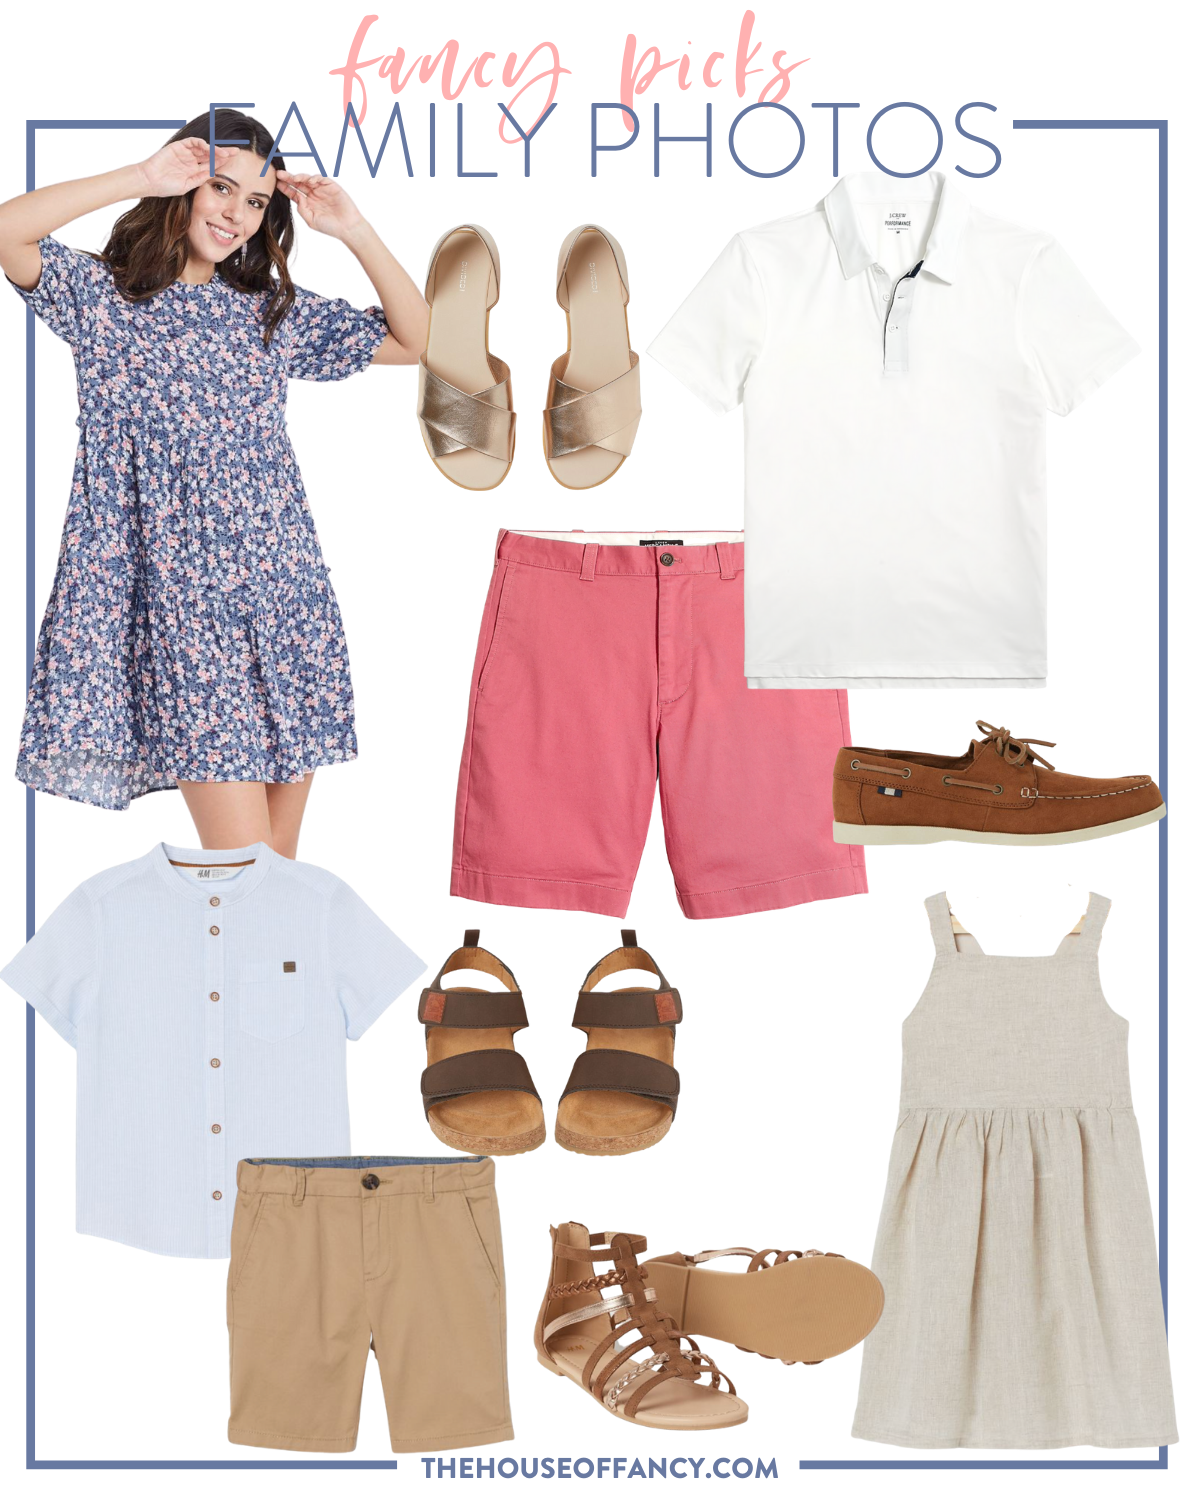 fancy Ashley family photo looks   Family Photo Outfits by popular Houston fashion blog, The House of Fancy: collage image of a floral print dress, coral pink shorts, white button up shirt, brown strap sandals, brown loafers, tan shorts, brown strap gladiator sandals, and tan linen dress.